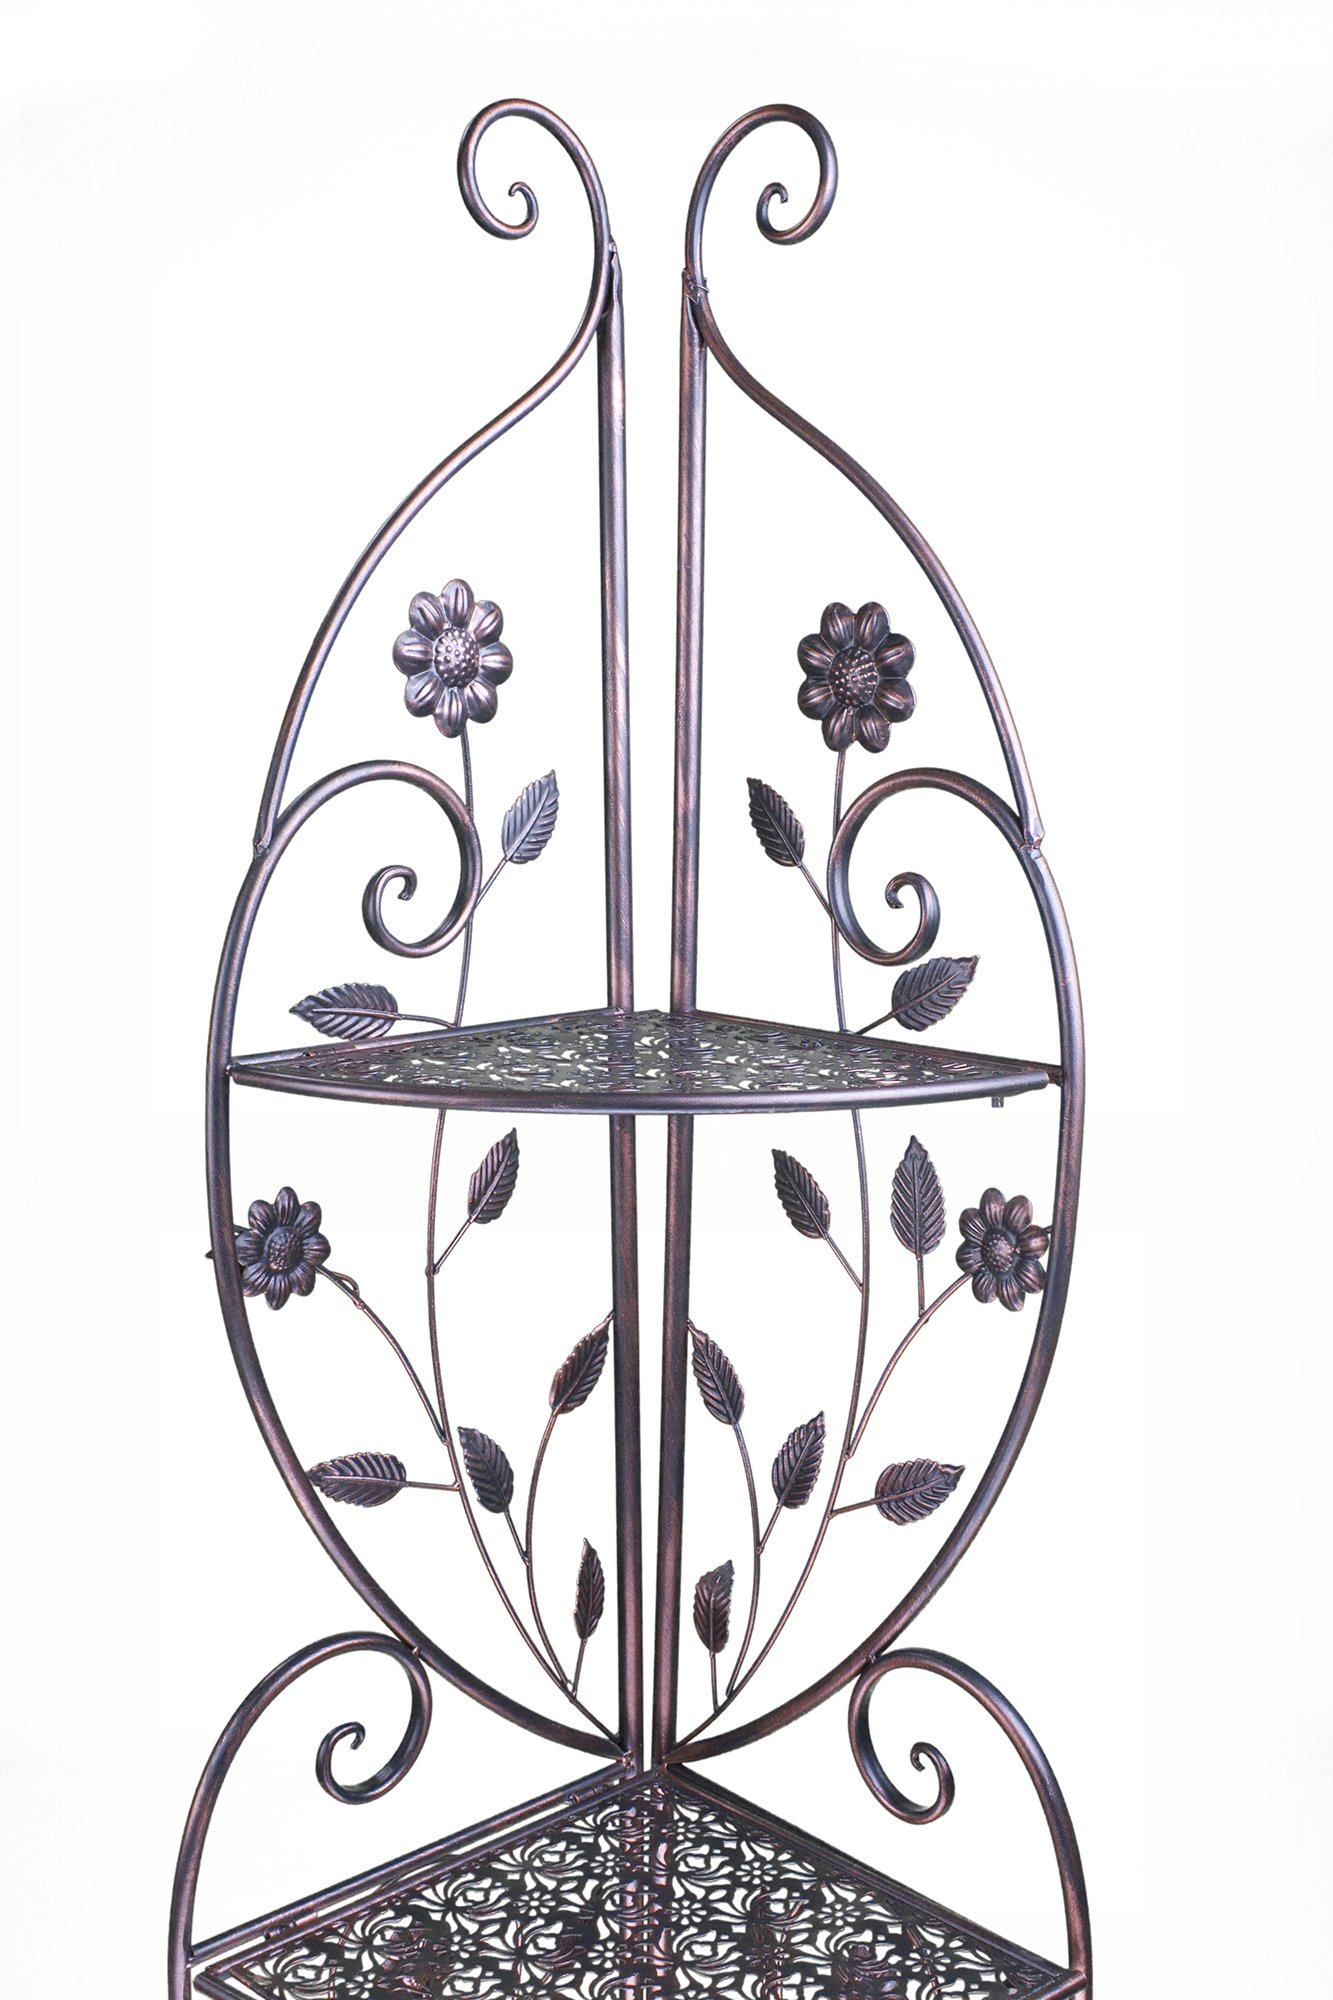 Heather Ann Creations W190795-BC Daisy Kitchen Corner Bakers Rack, Blackened Copper by Heather Ann Creations (Image #5)